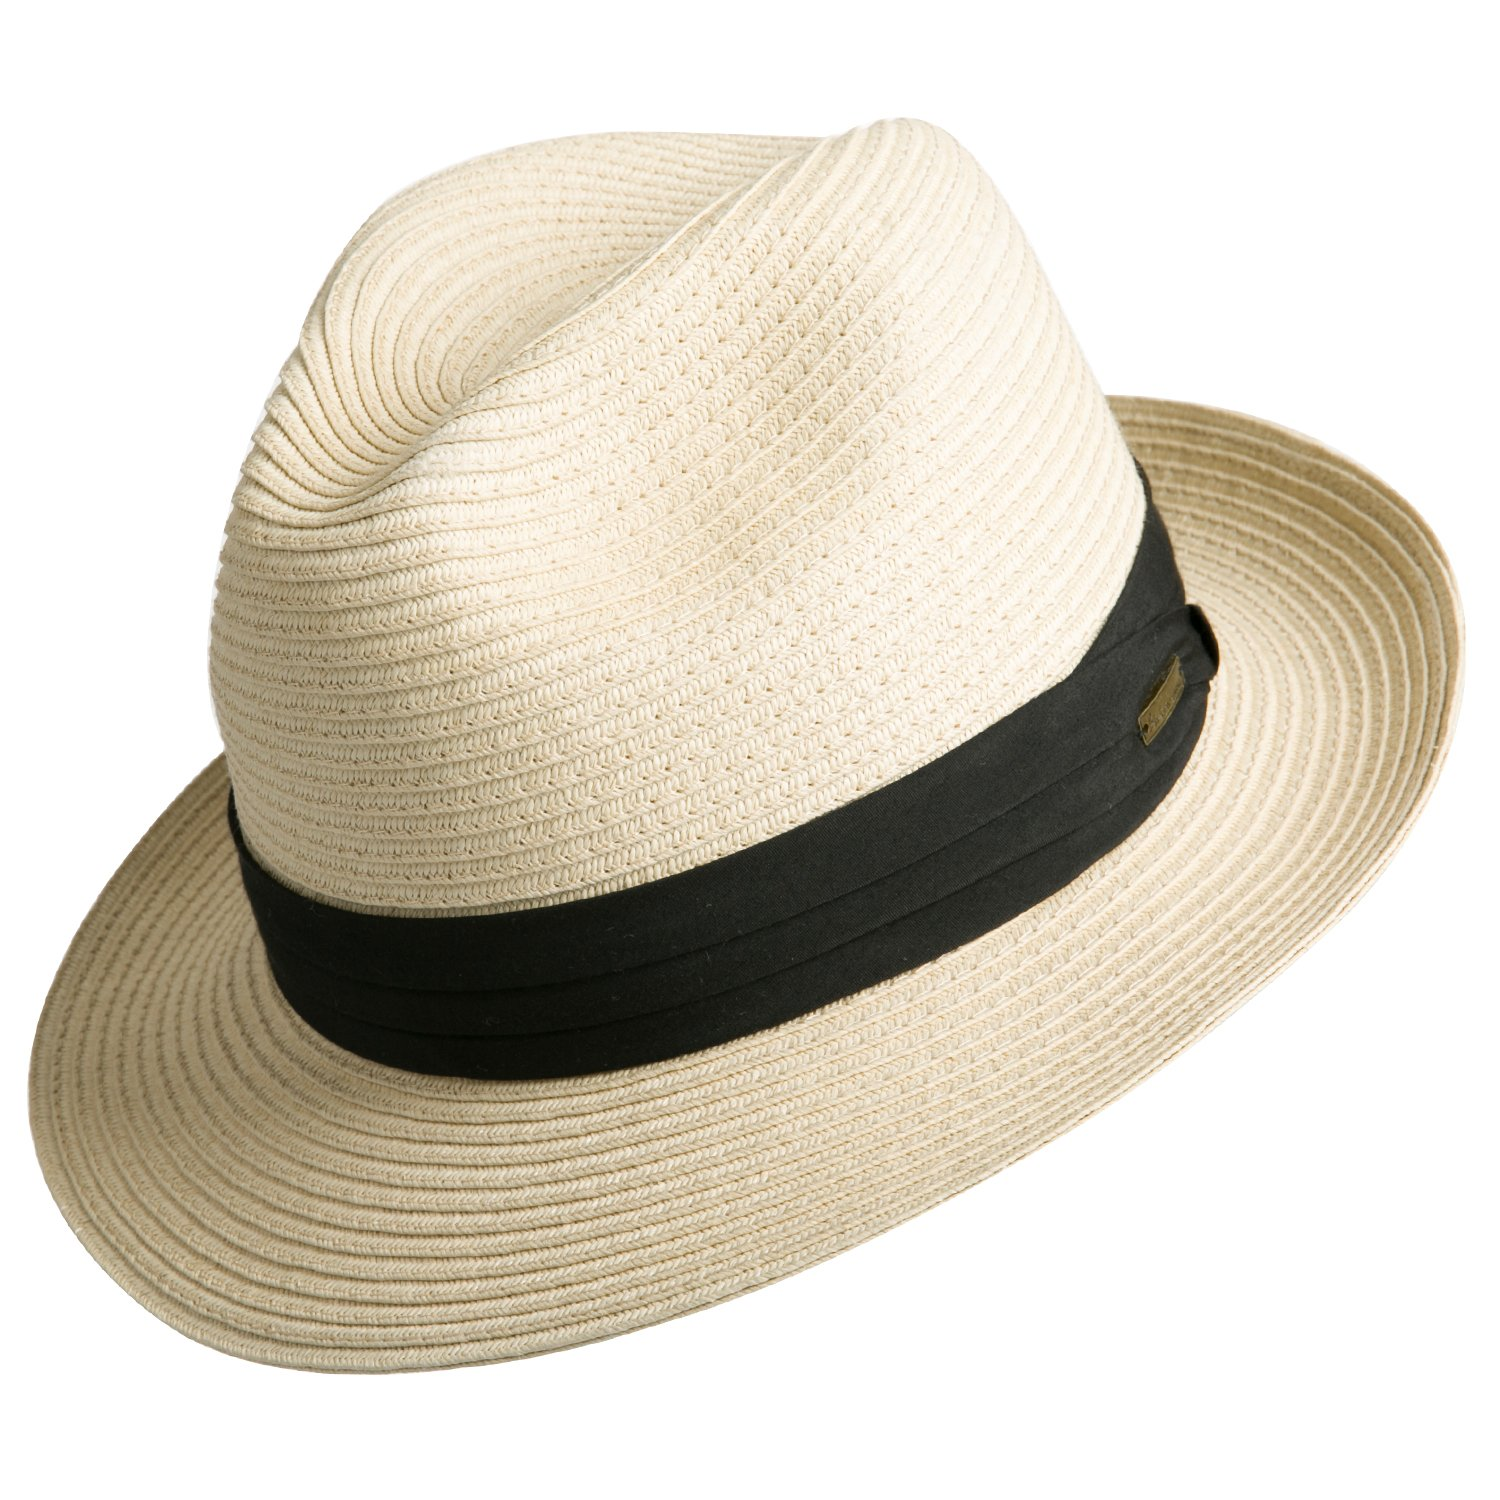 8656faade46d1c Sedancasesa Women and Men's Straw Fedora Panama Beach Sun Hat Black Ribbon  Band at Amazon Men's Clothing store: